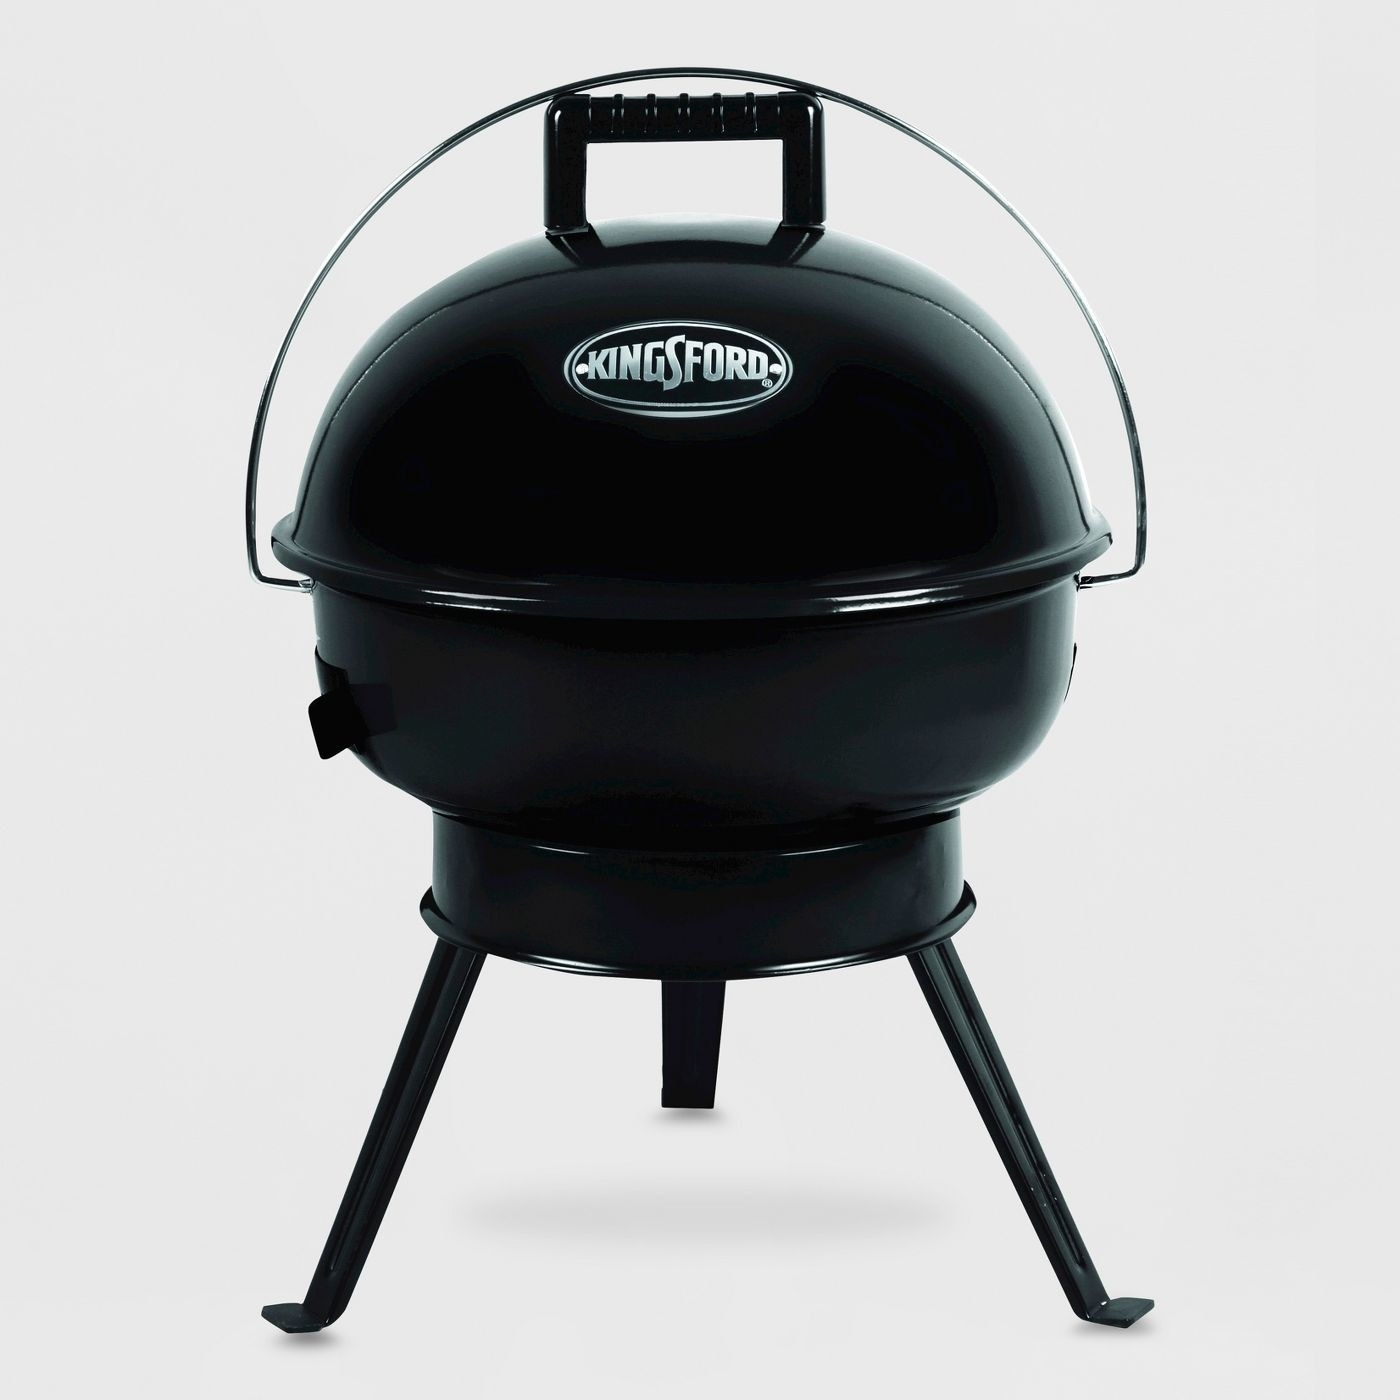 The portable grill